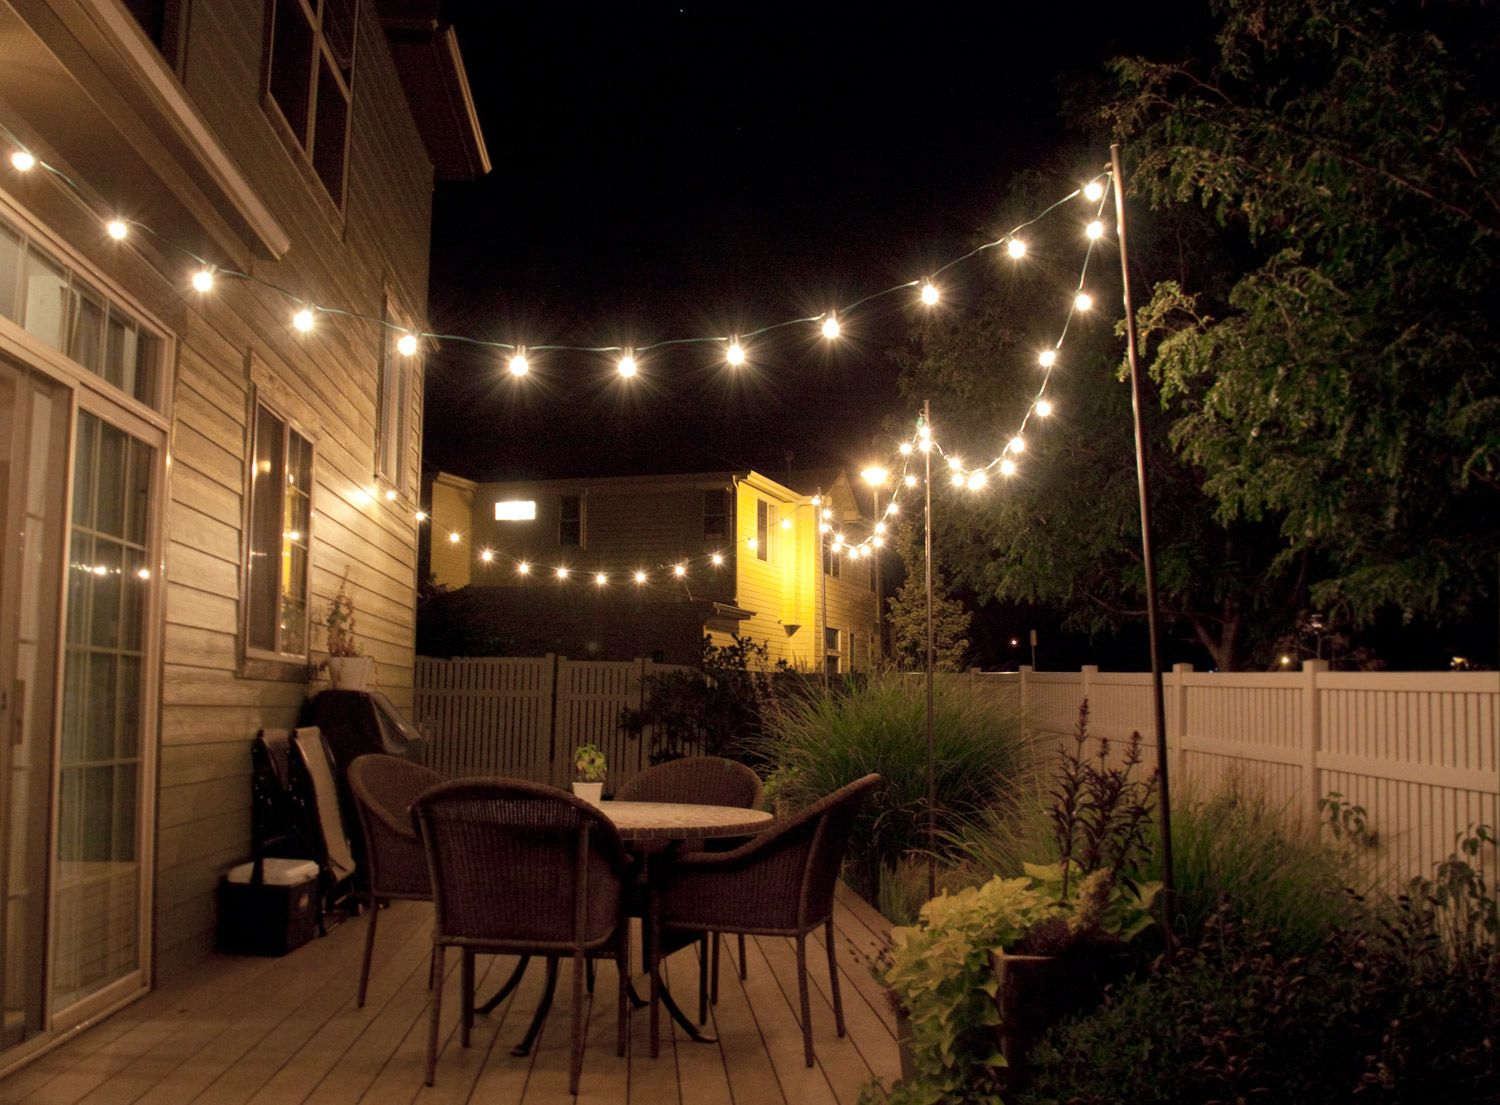 How To Hang Outdoor String Lights Amusing How To Make Inexpensive Poles To Hang String Lights On  Café Style Inspiration Design